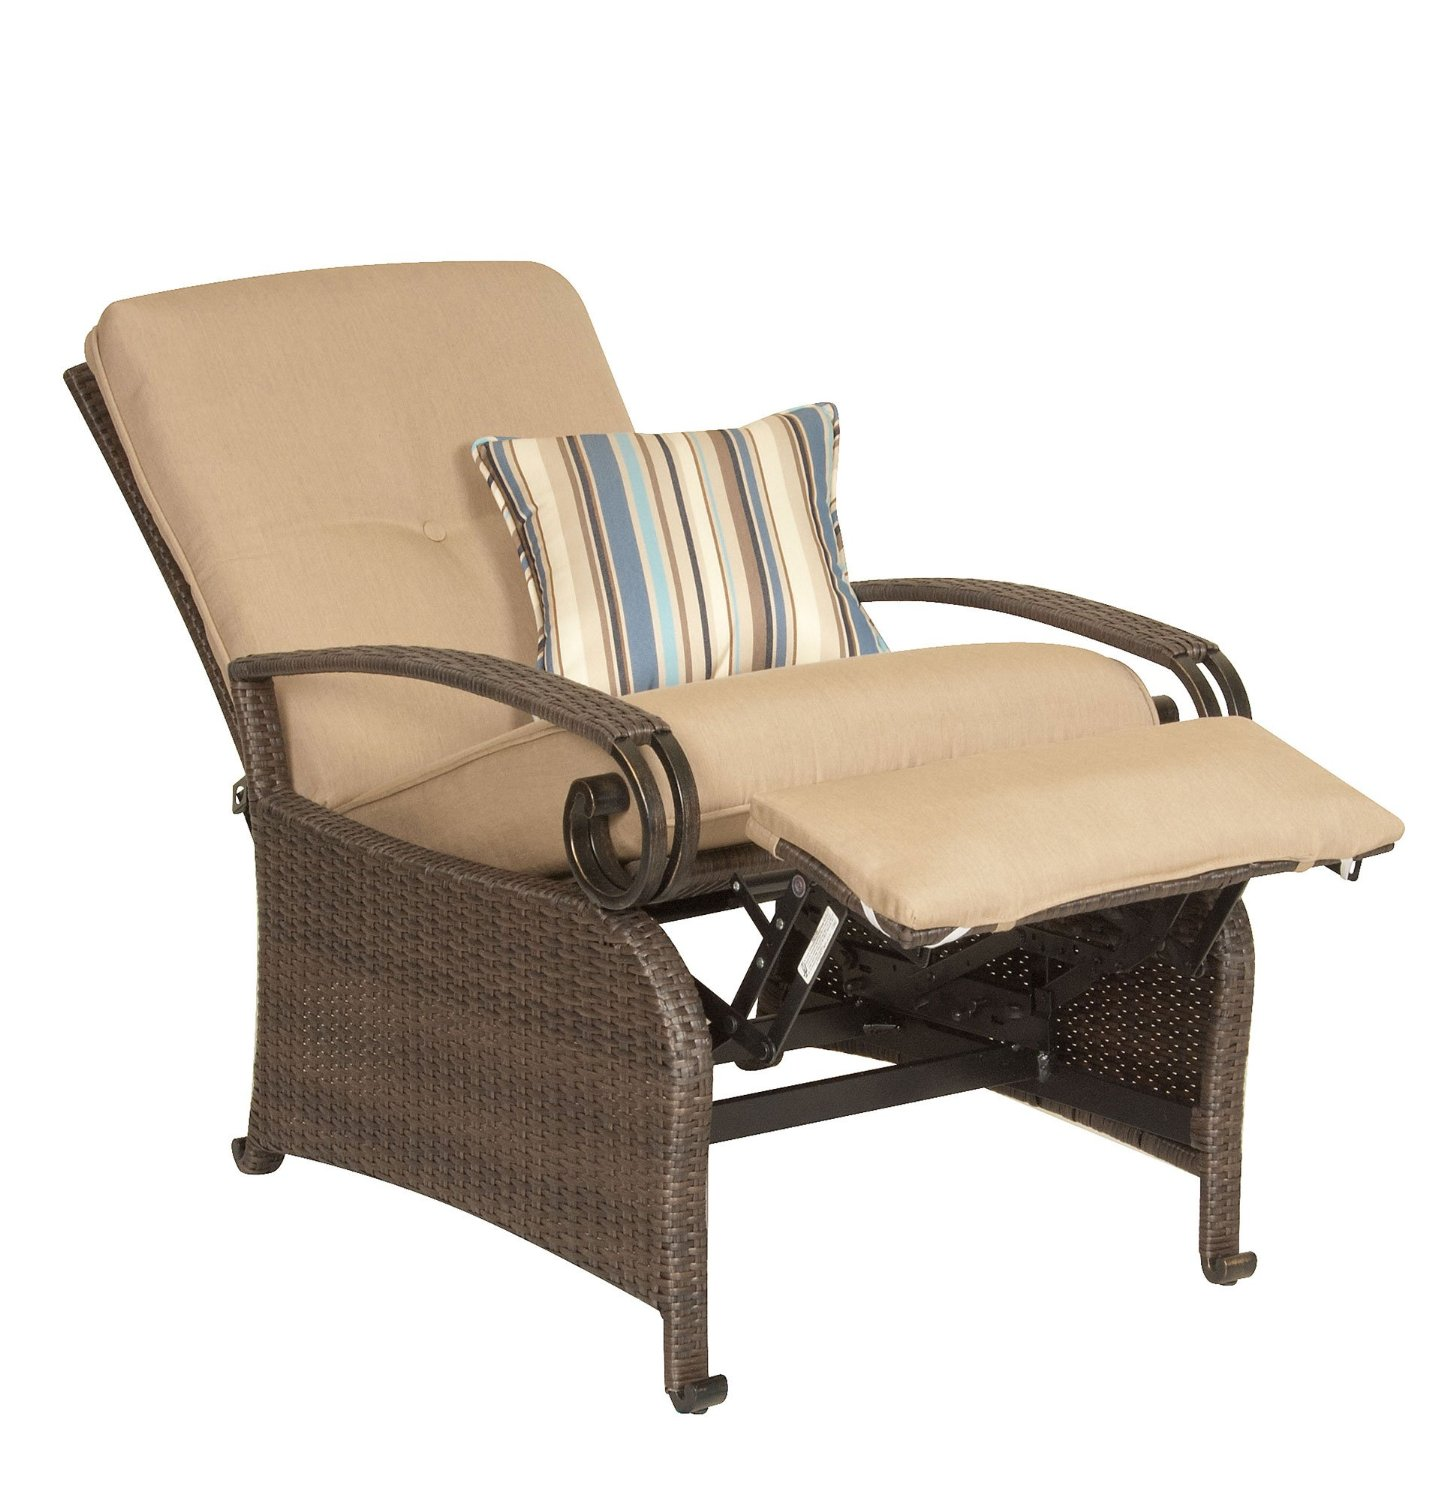 Top 3 Outdoor Recliner Patio Lounge Chair The Best Recliner